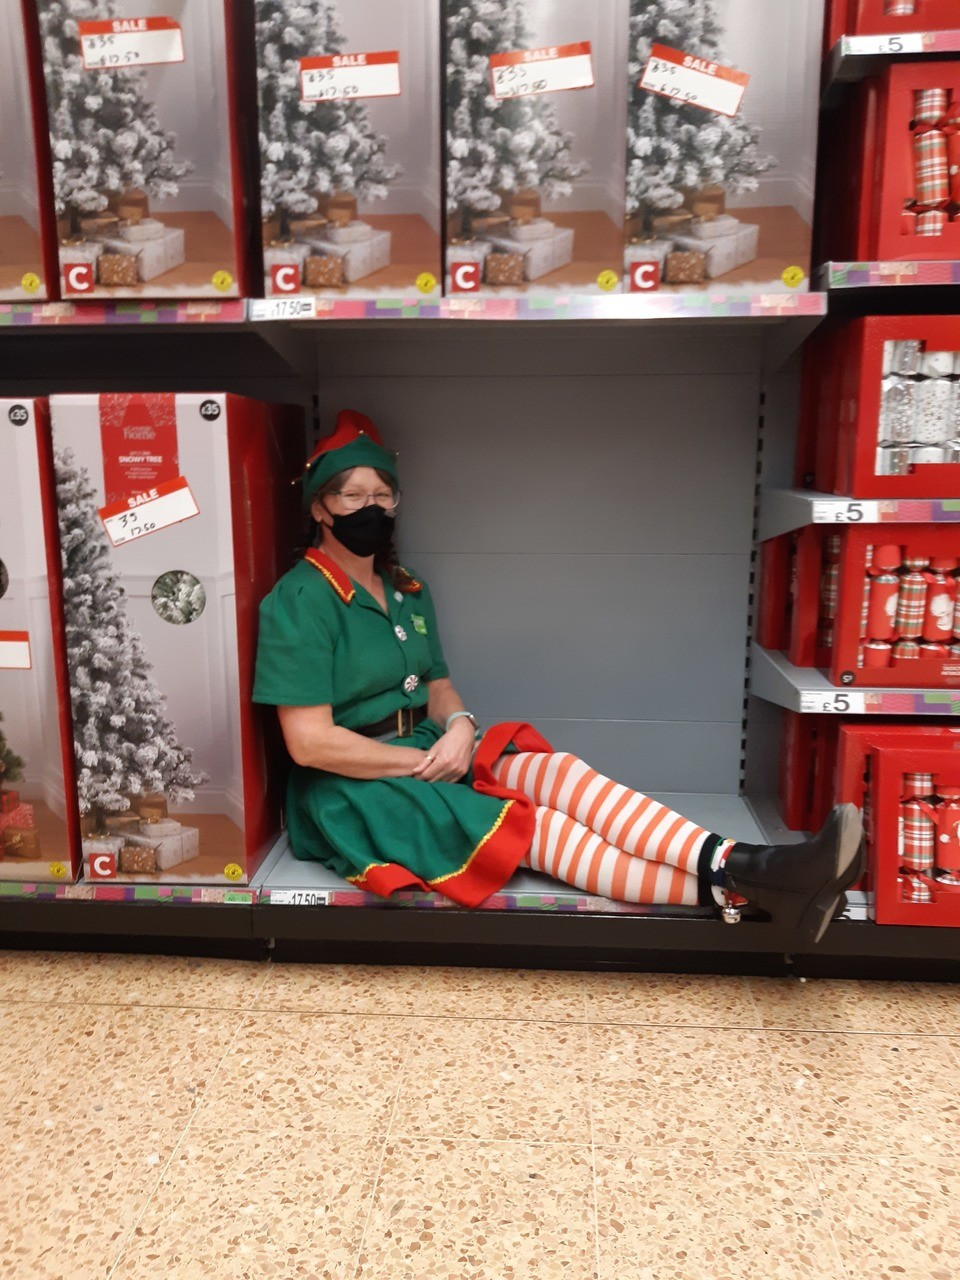 Our naughty little Asda Elves are causing us trouble today 😘🤶🎅🤣 | Asda Norwich